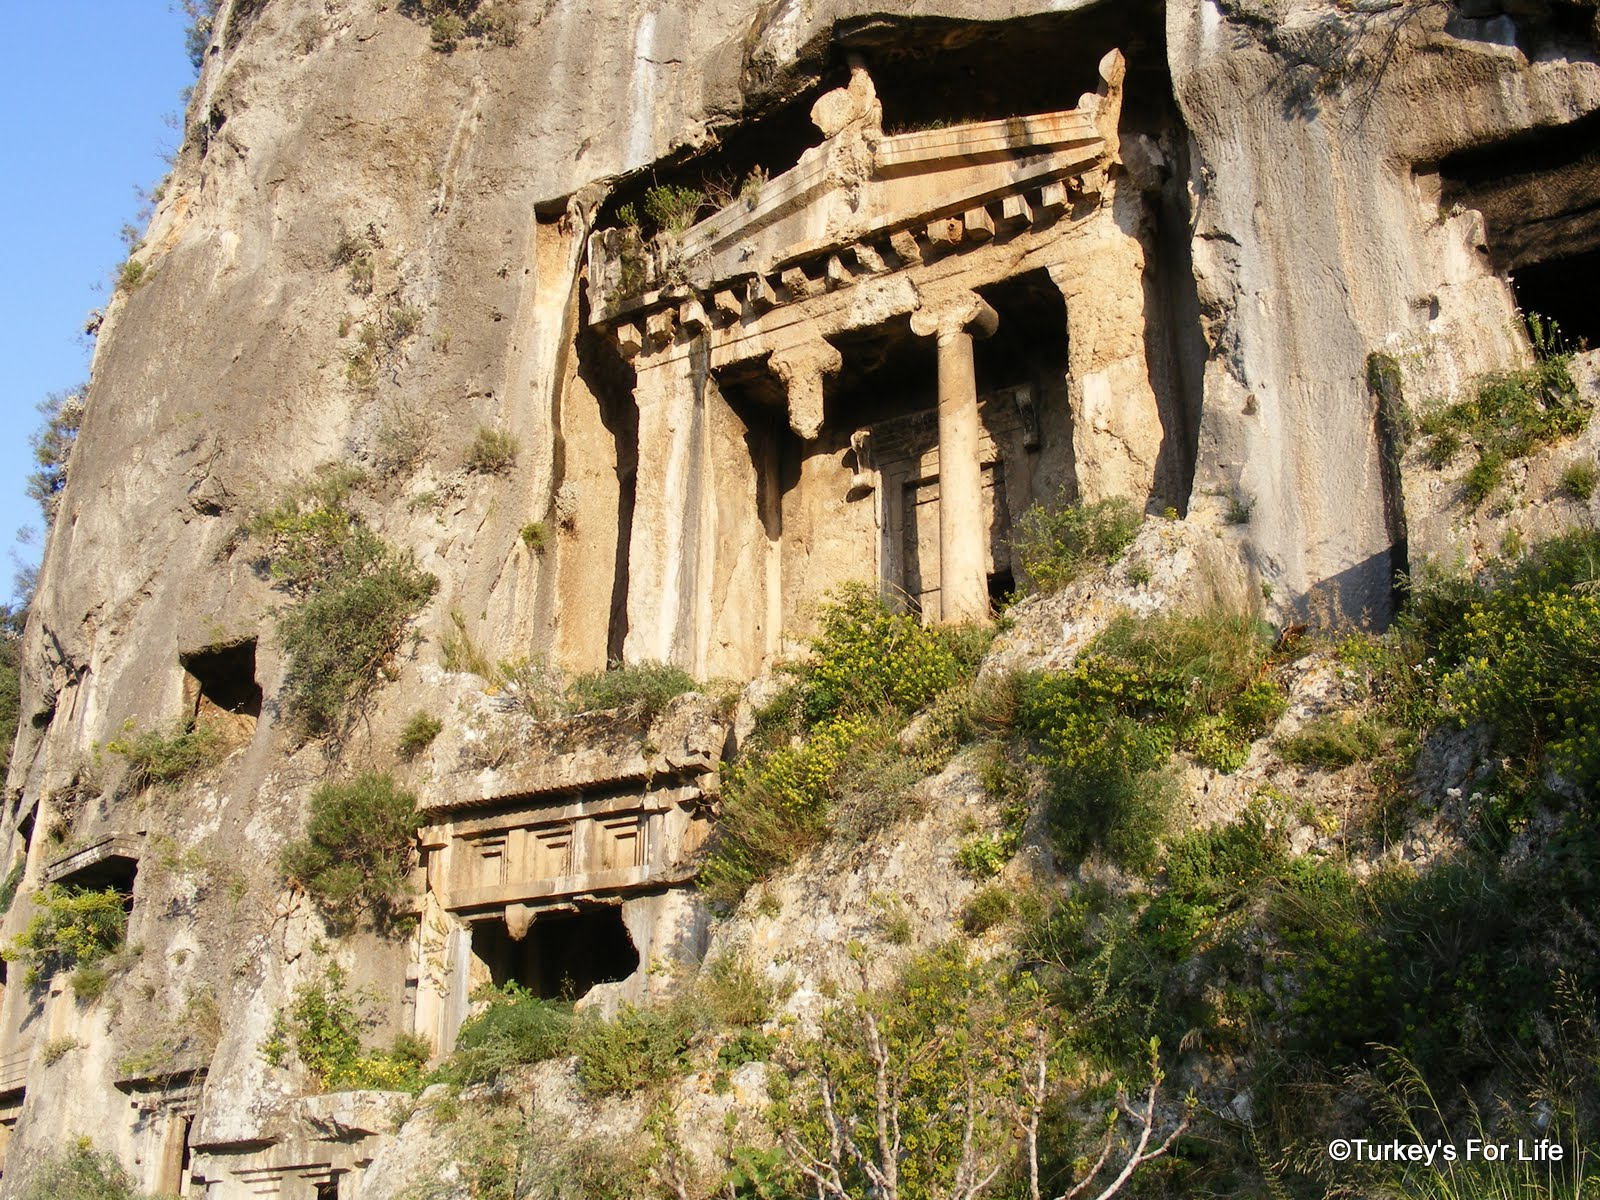 Fethiye's Lycian Rock Tombs • Turkey's For Life